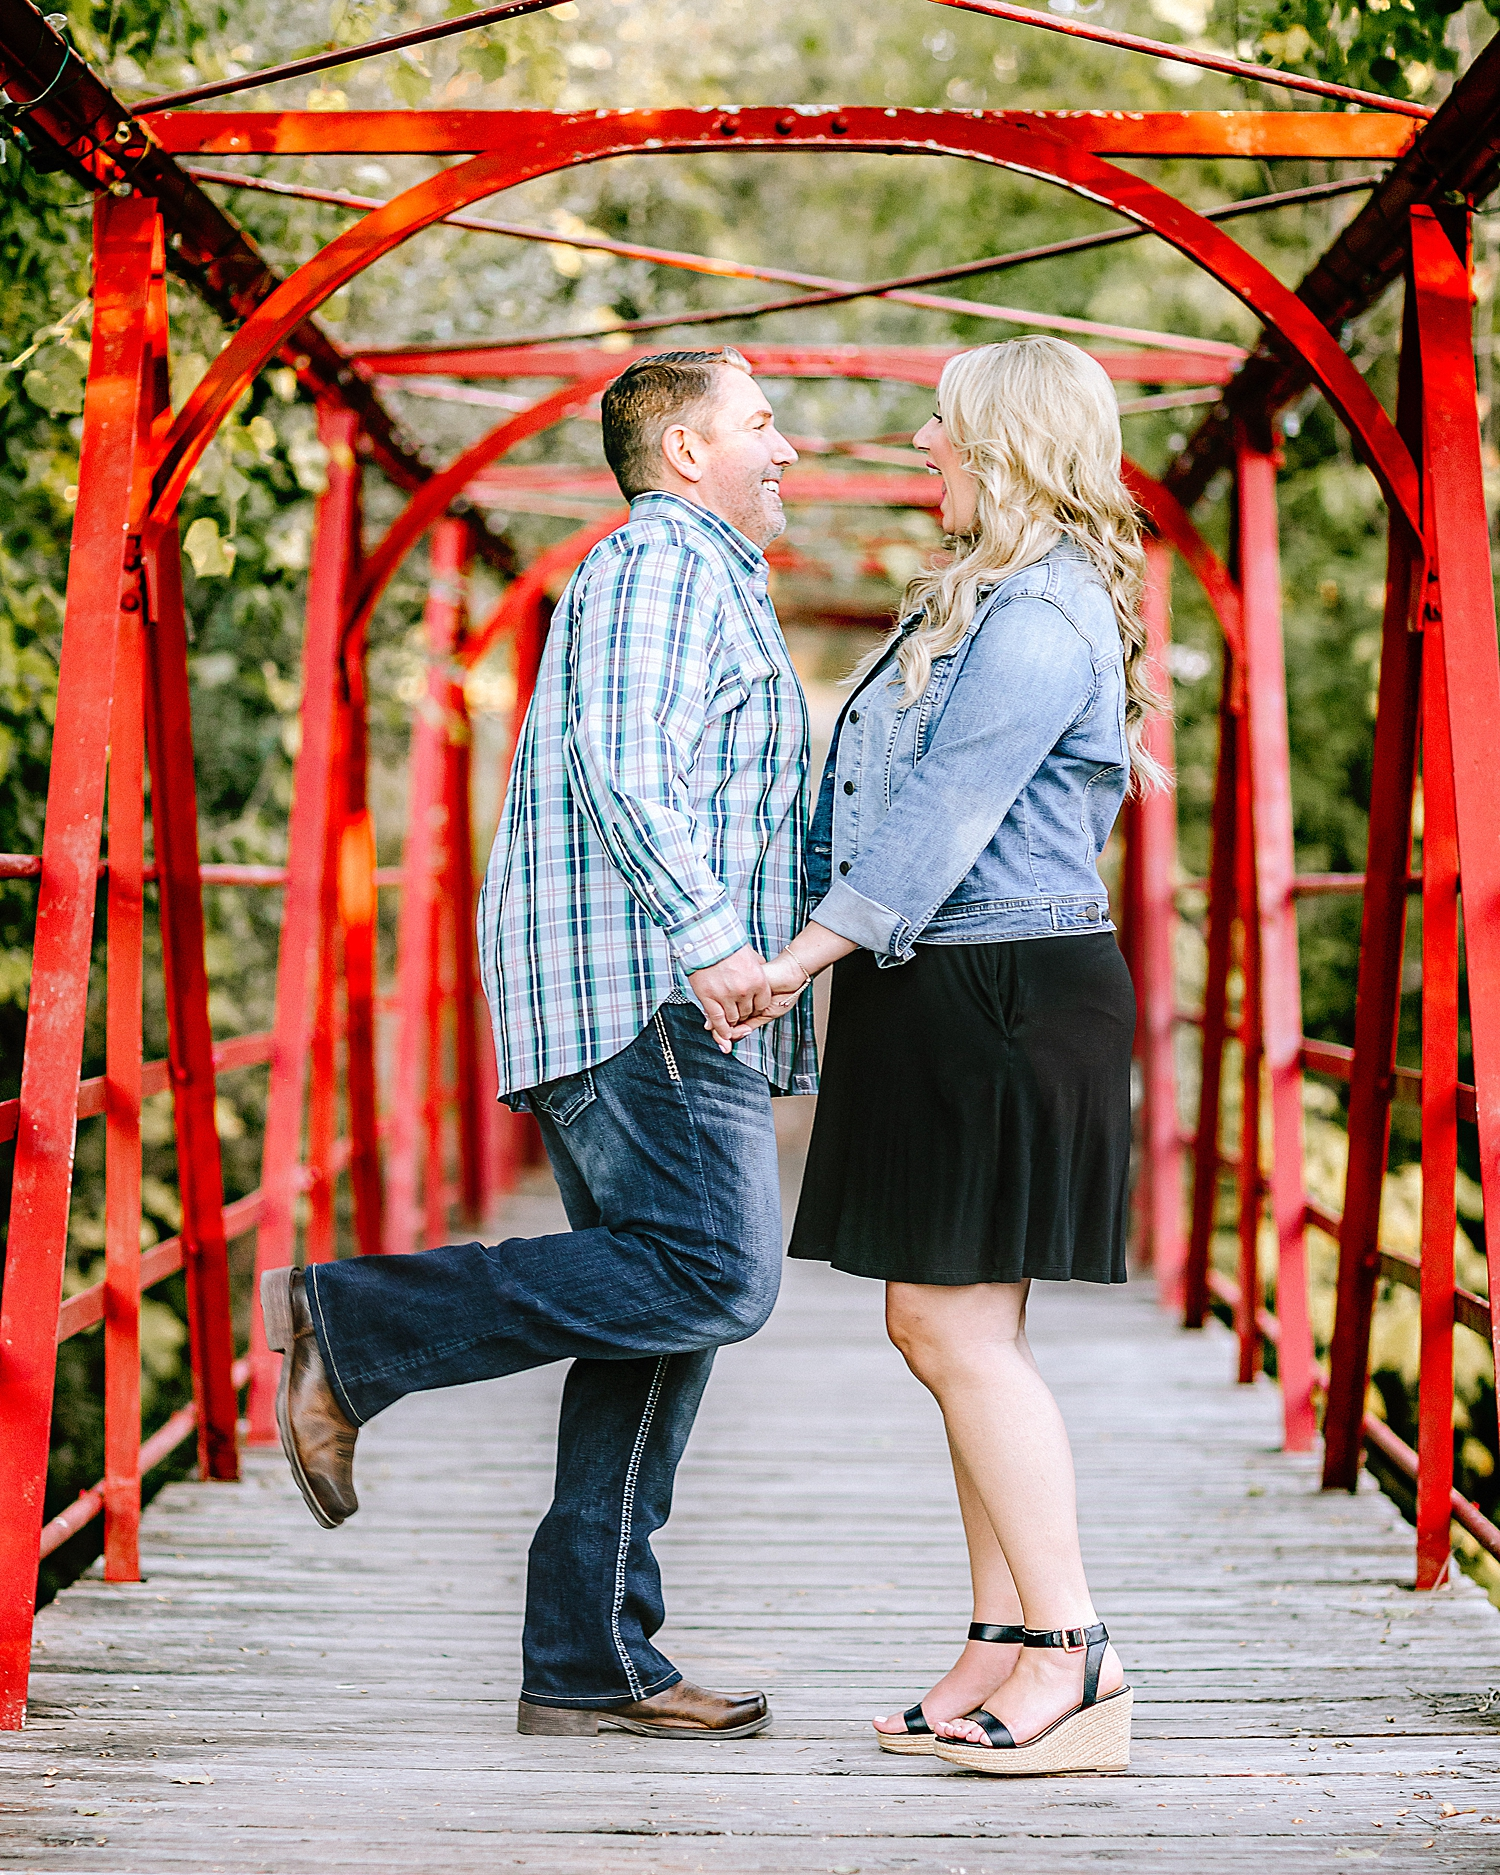 Engagement-Photo-Session-University-of-Incarnate-Word-UIW-San-Antonio-Texas-Carly-Barton-Photography_0001.jpg